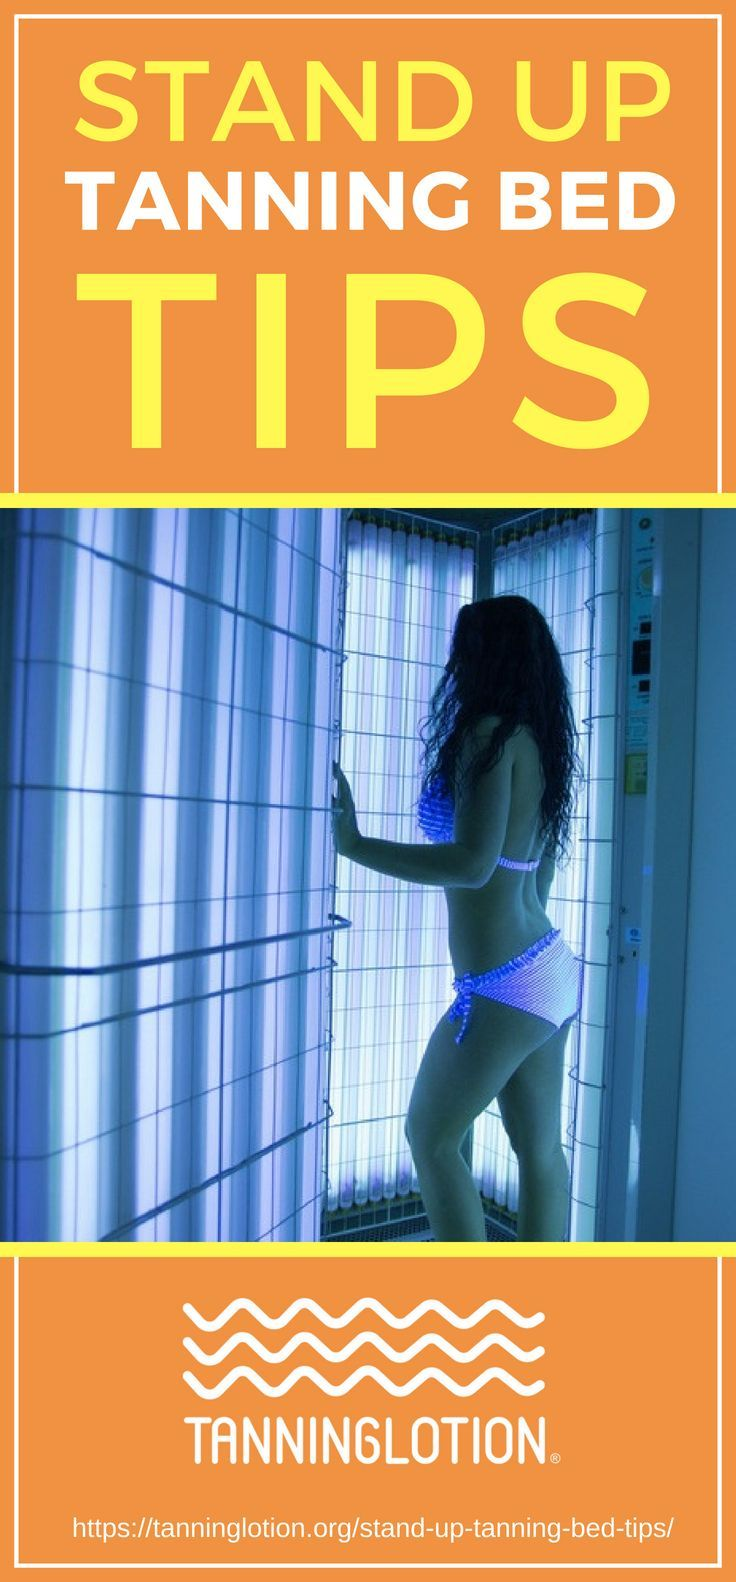 Stand Up Tanning With Images Tanning Bed Tips Tanning Bed